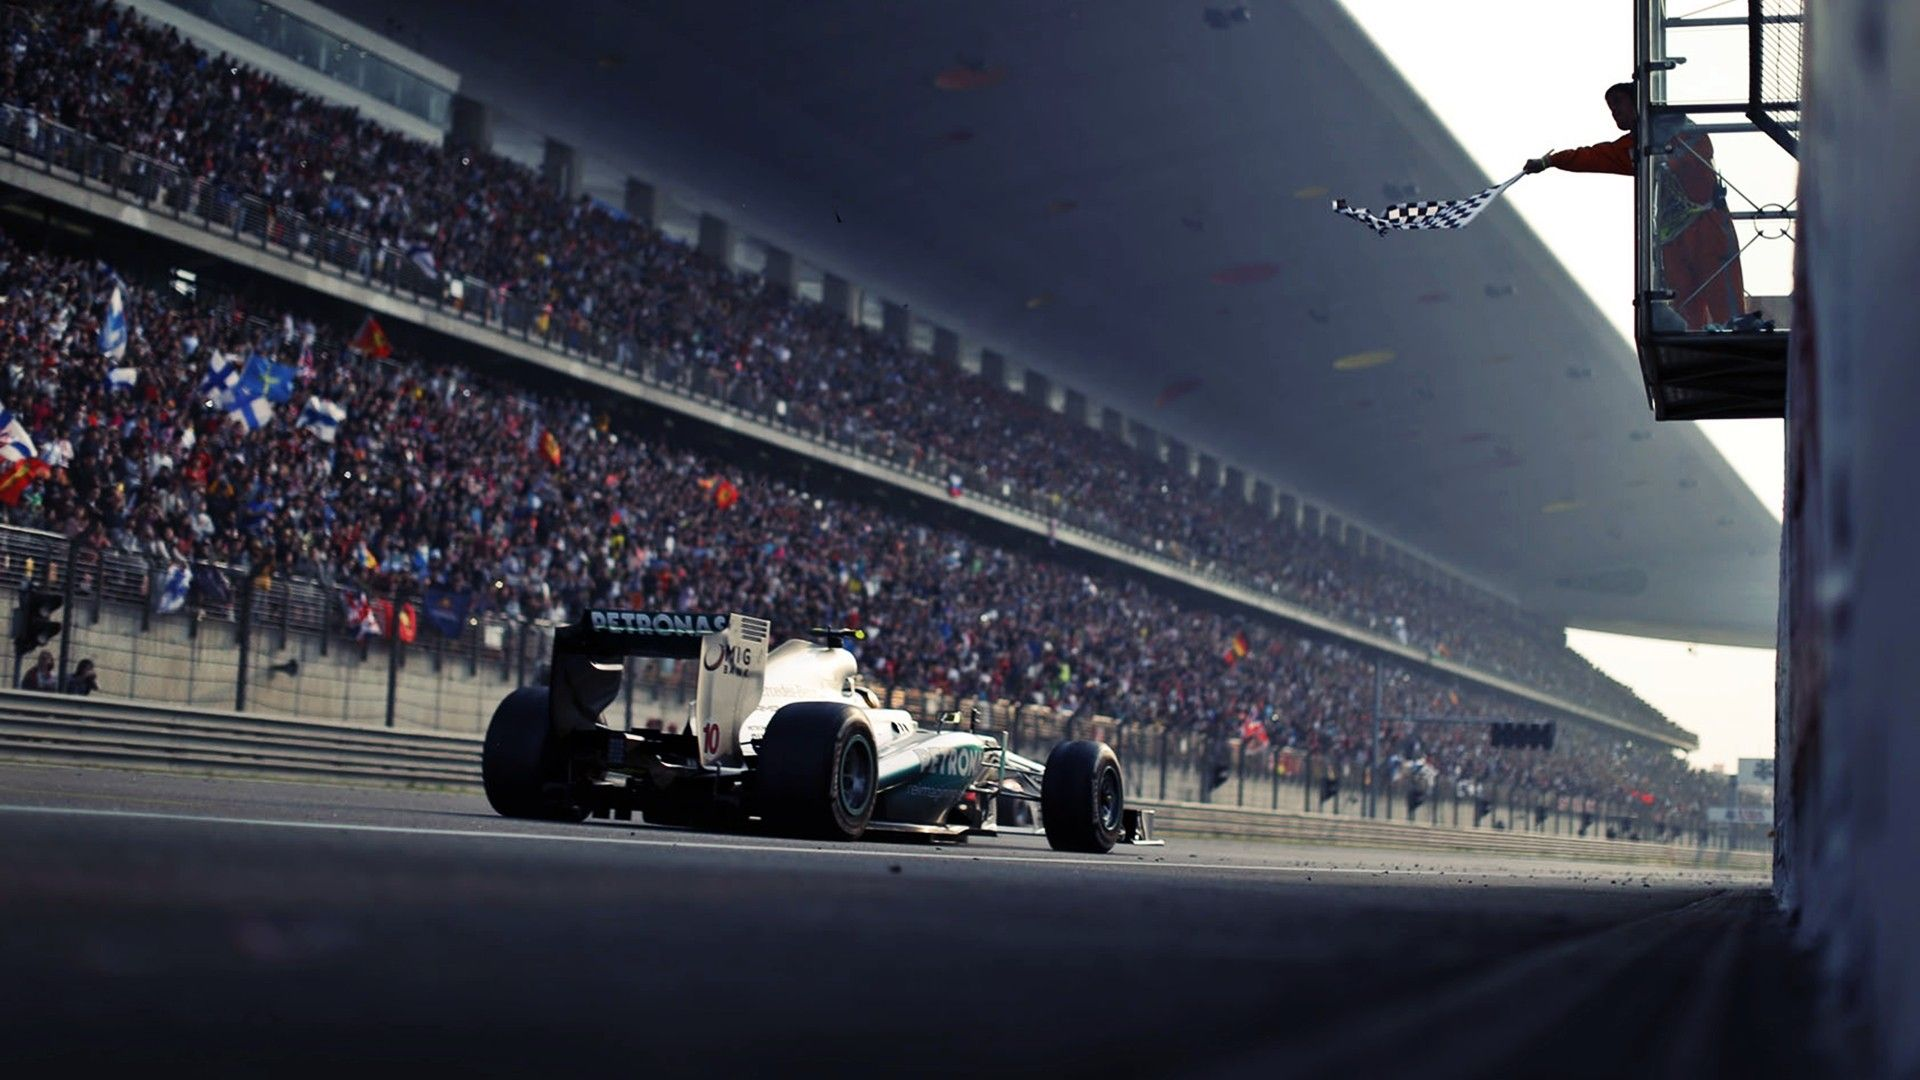 f1 mercedes wallpaper for windows #0rt | cars | pinterest | f1 and cars